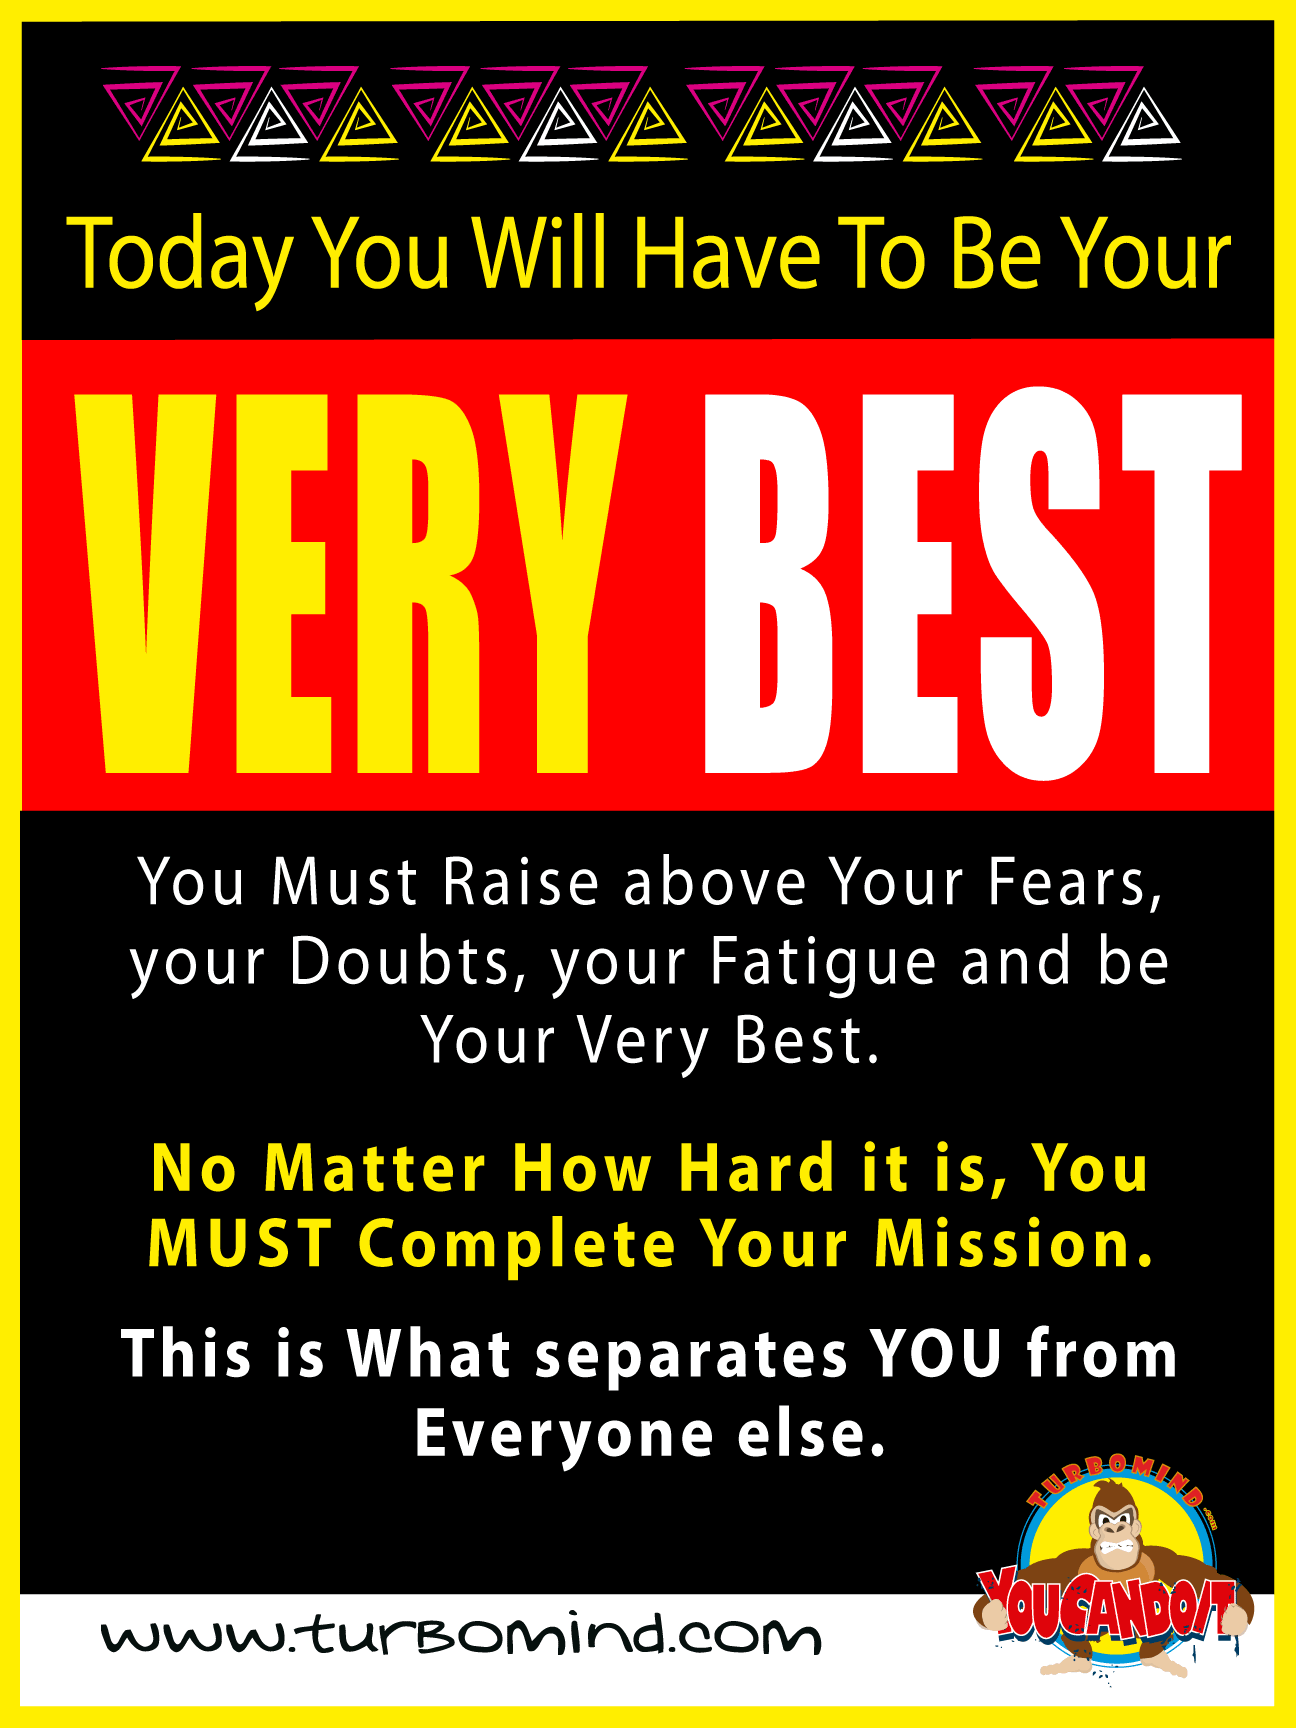 TODAY YOU WILL HAVE TO BE YOUR VERY BEST